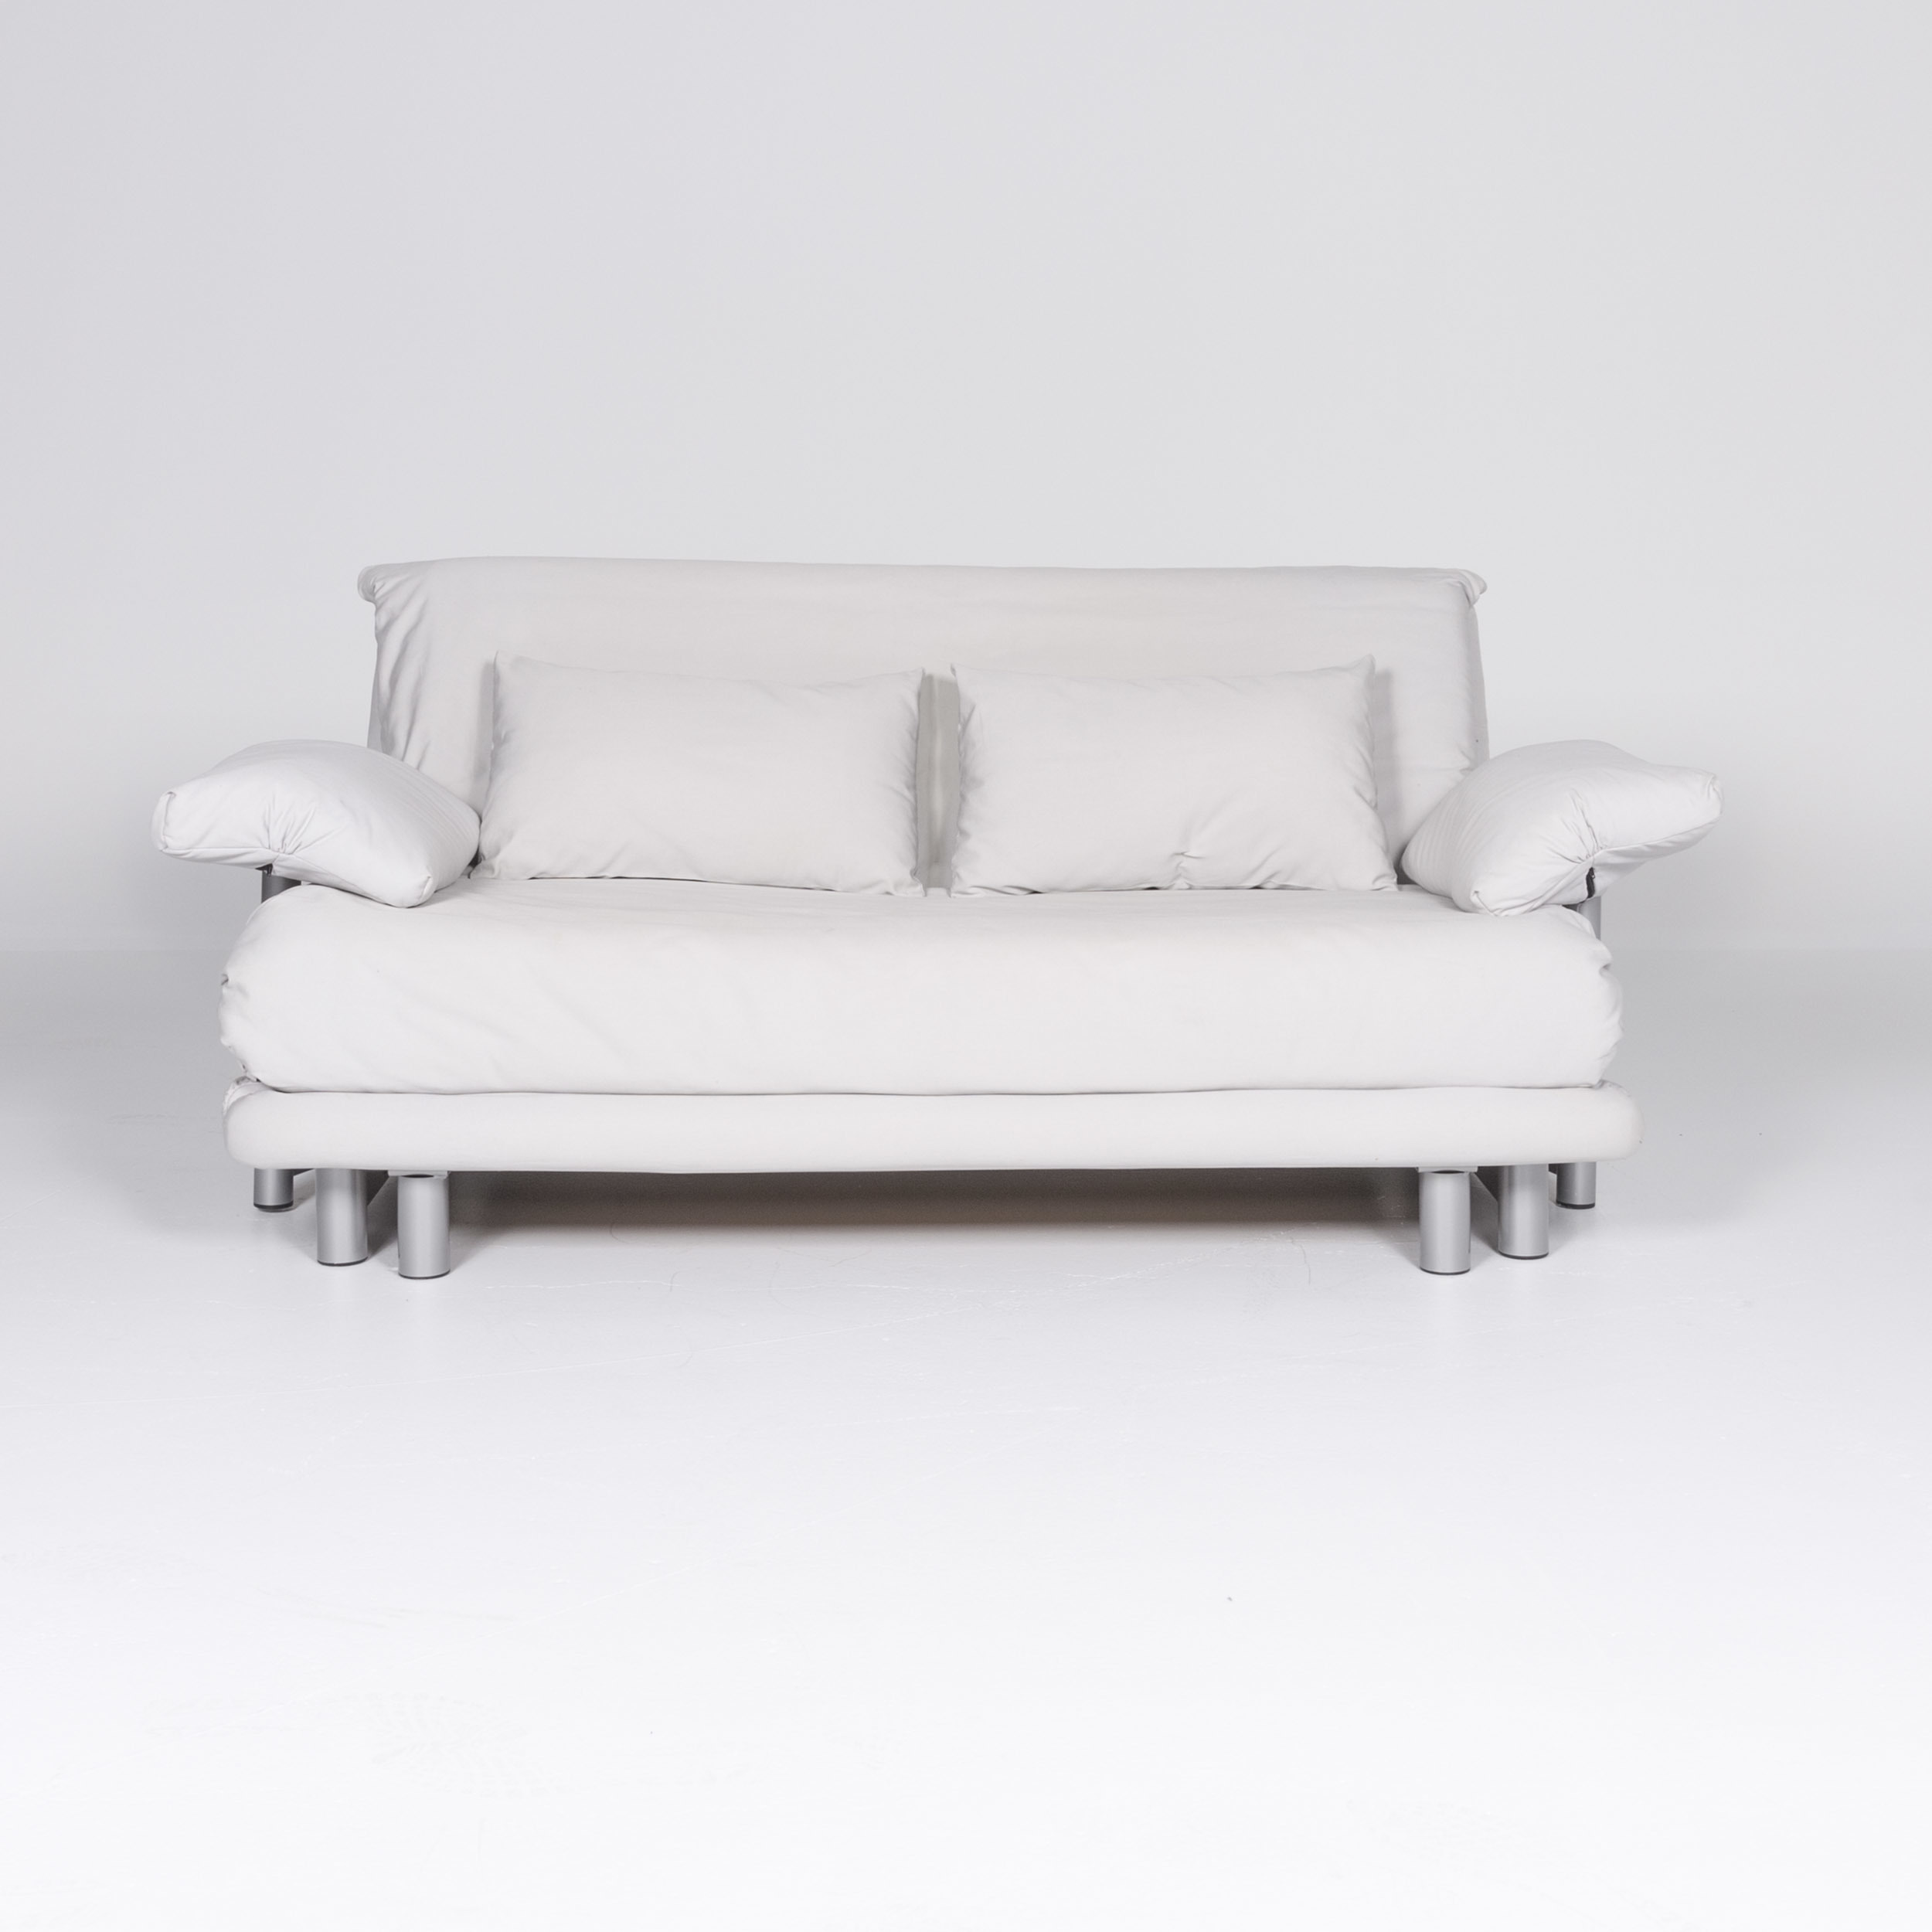 Ligne Roset Multy Designer Fabric Sofa Gray Two Seater Couch Sofa Bed Function 8170